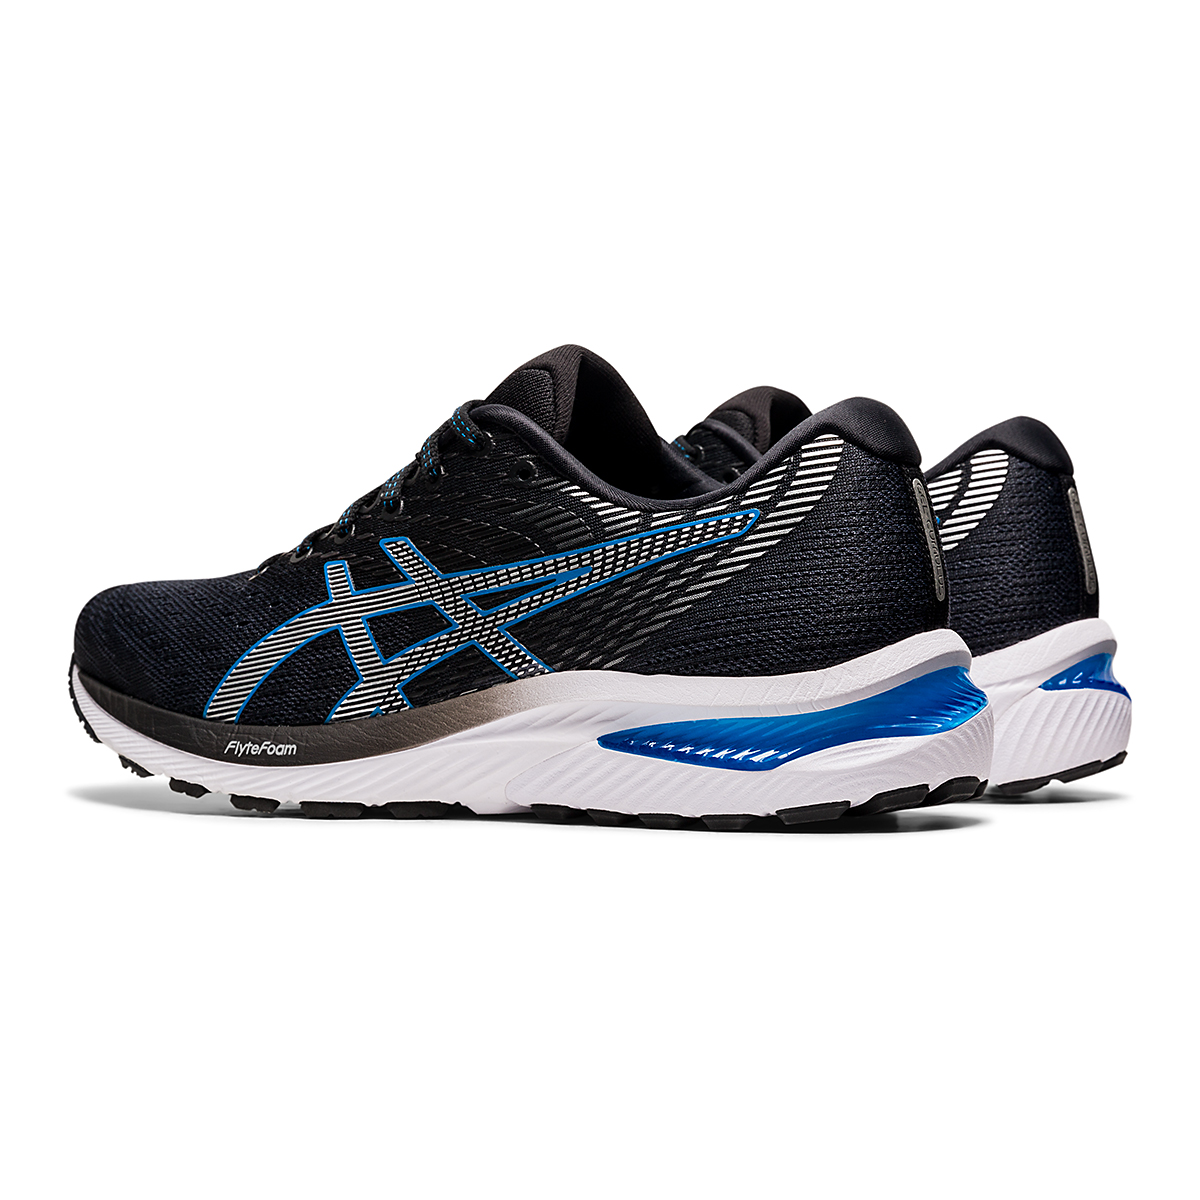 Men's Asics GEL-Cumulus 22 Running Shoe - Color: Carrier Grey/Pure Silver - Size: 7 - Width: Regular, Carrier Grey/Pure Silver, large, image 4